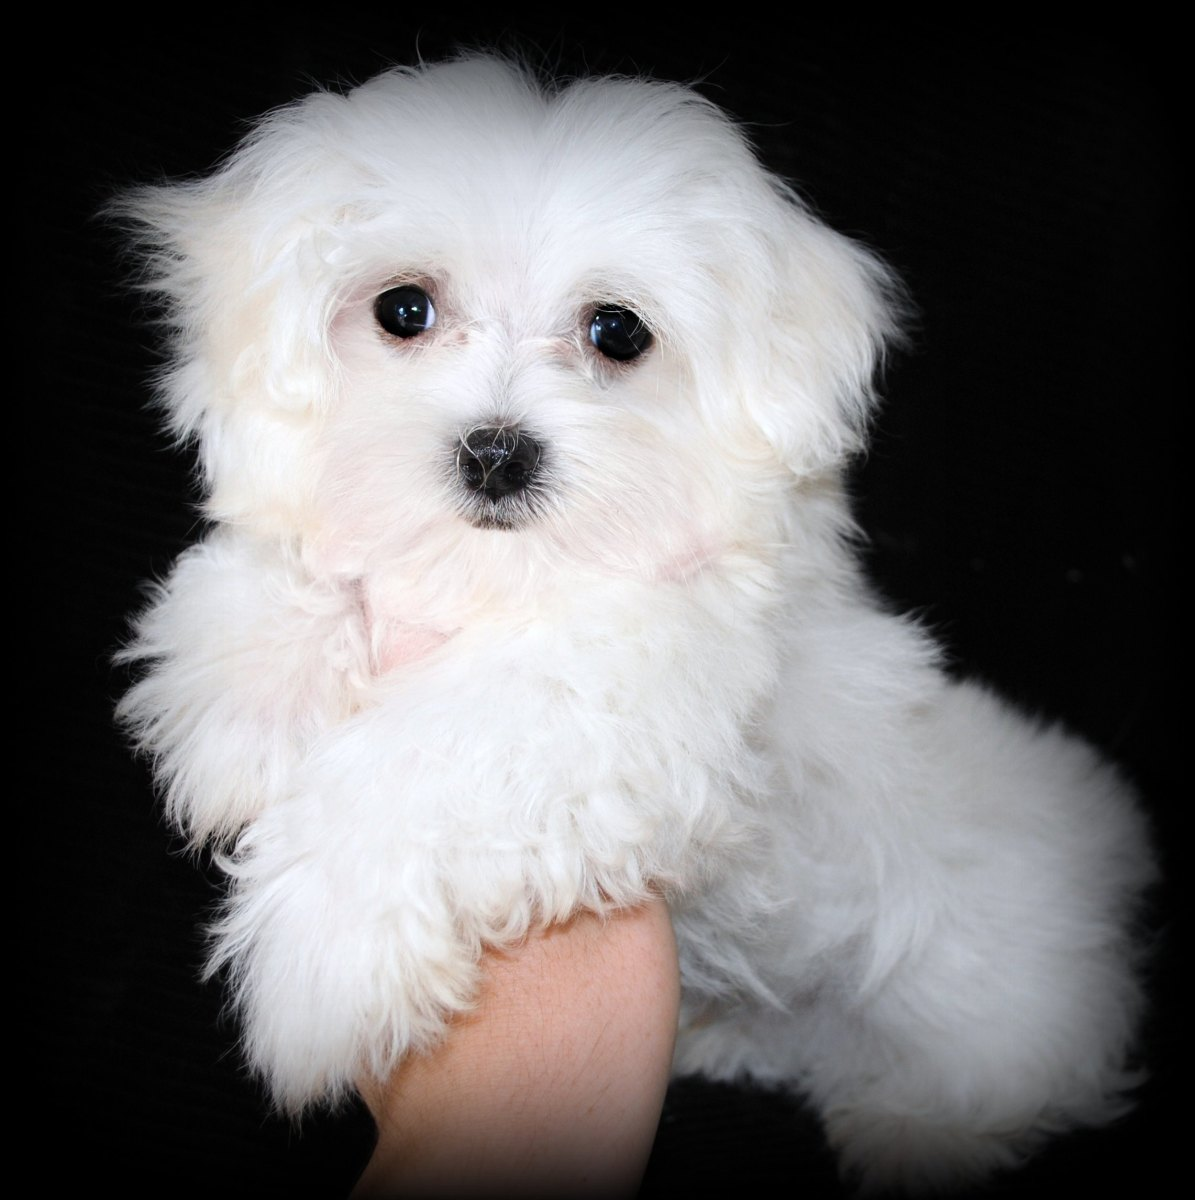 How To House Train A Puppy Fast Three Training Methods To